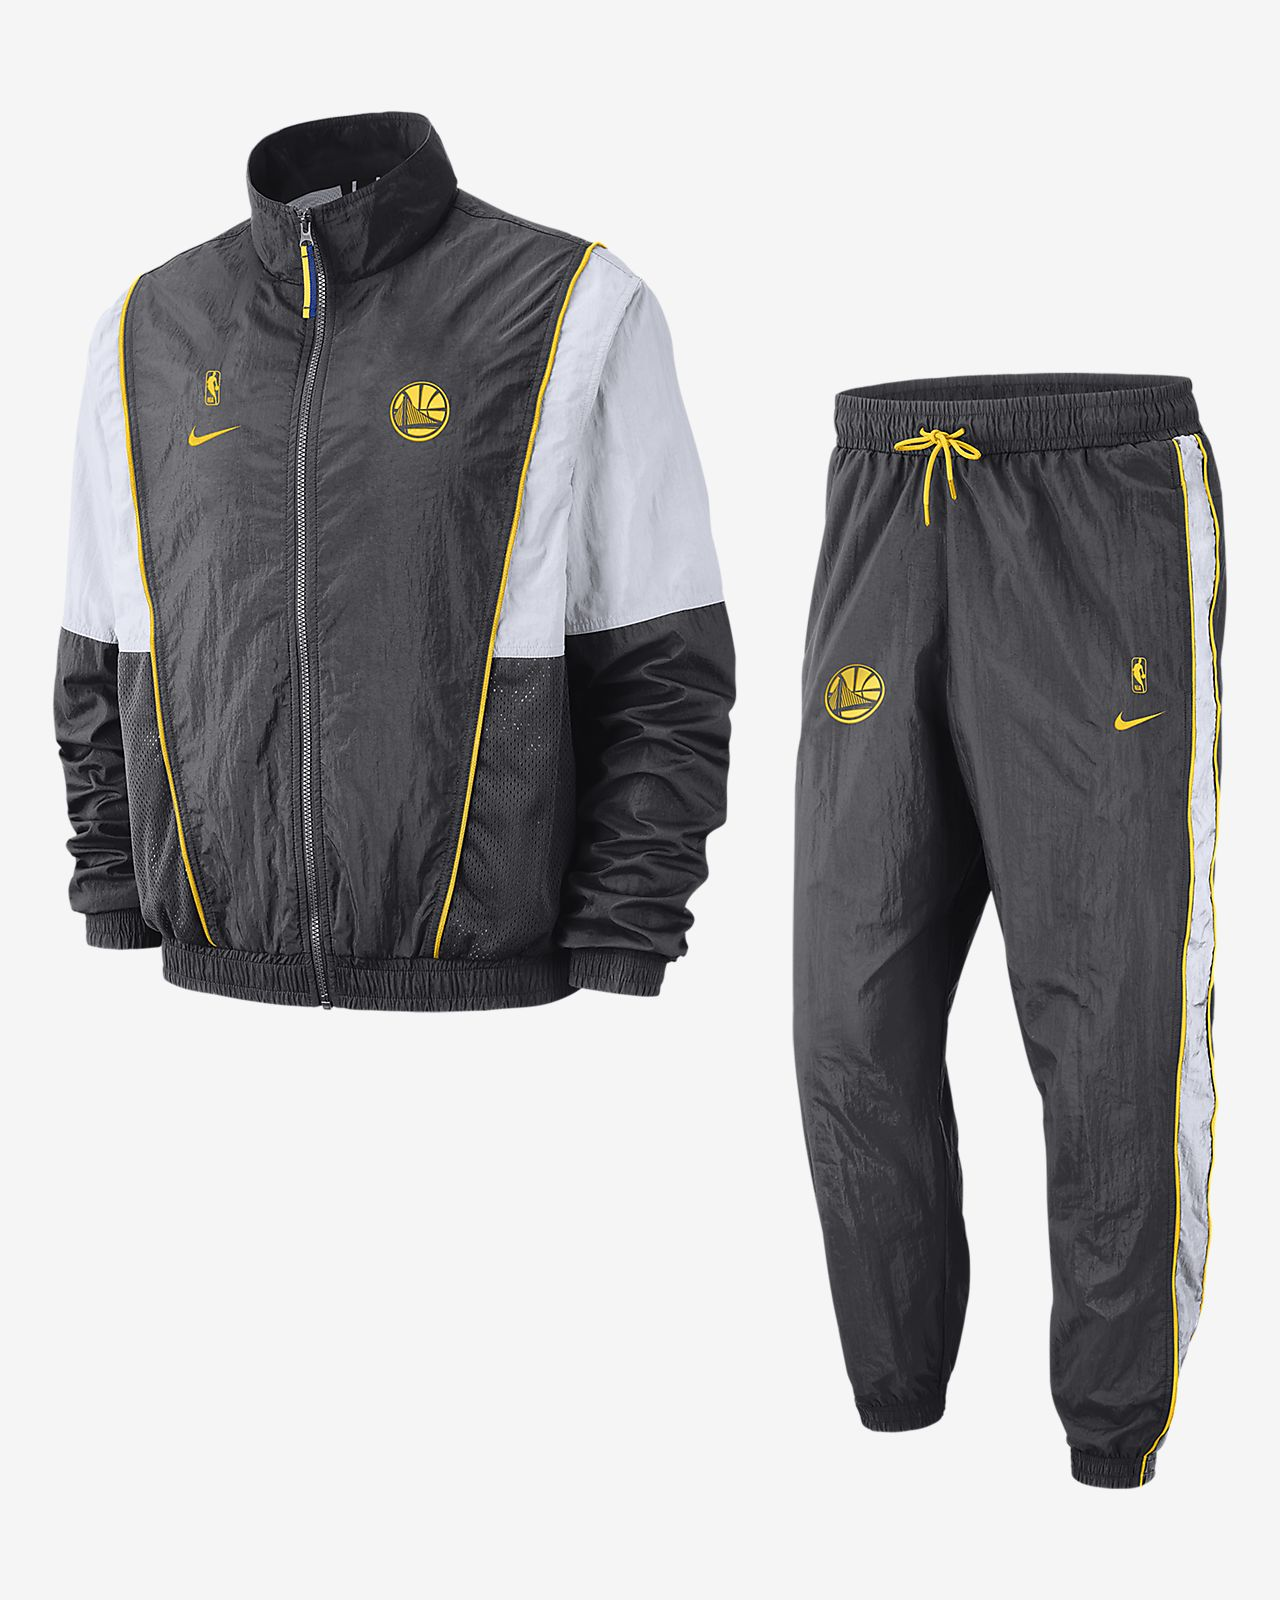 Golden State Warriors Nike NBA-Trainingsanzug für Herren